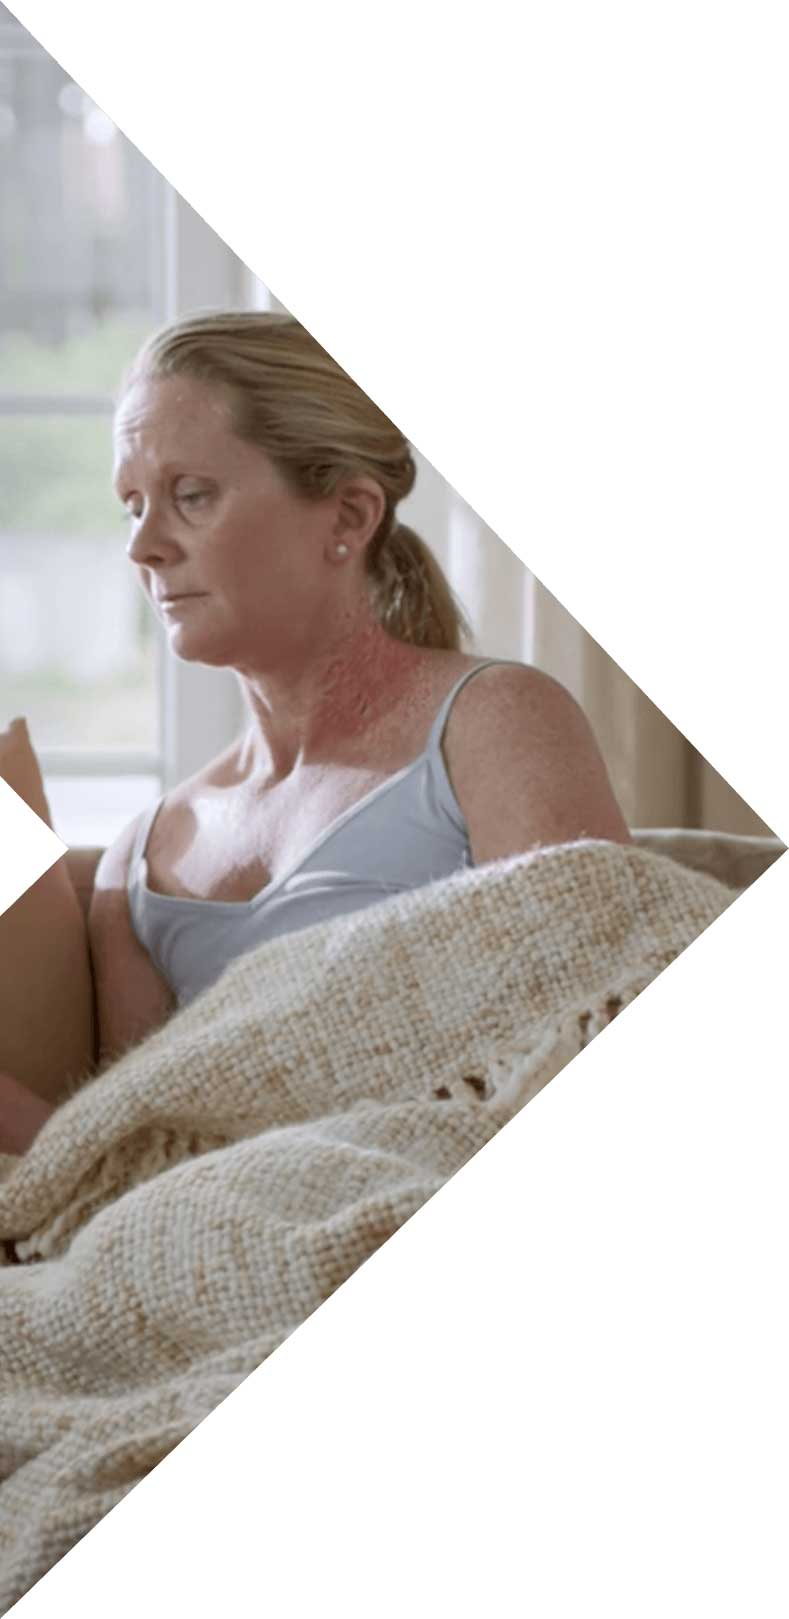 Woman suffering from atopic dermatitis inflammation